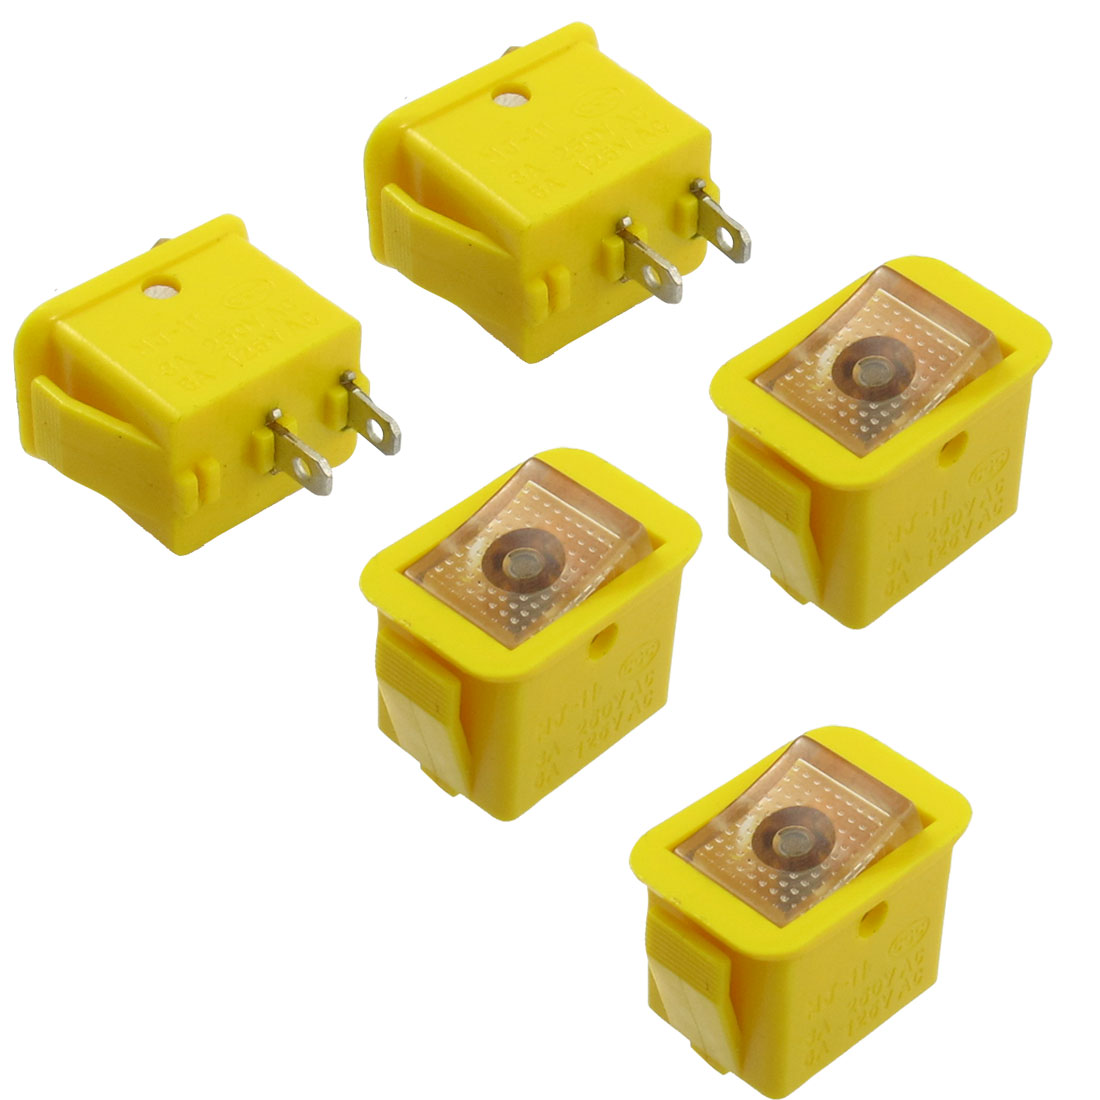 5 Pcs 2 Pin SPST On/Off Rocker Switch AC 3A/250V 6A/125V Yellow